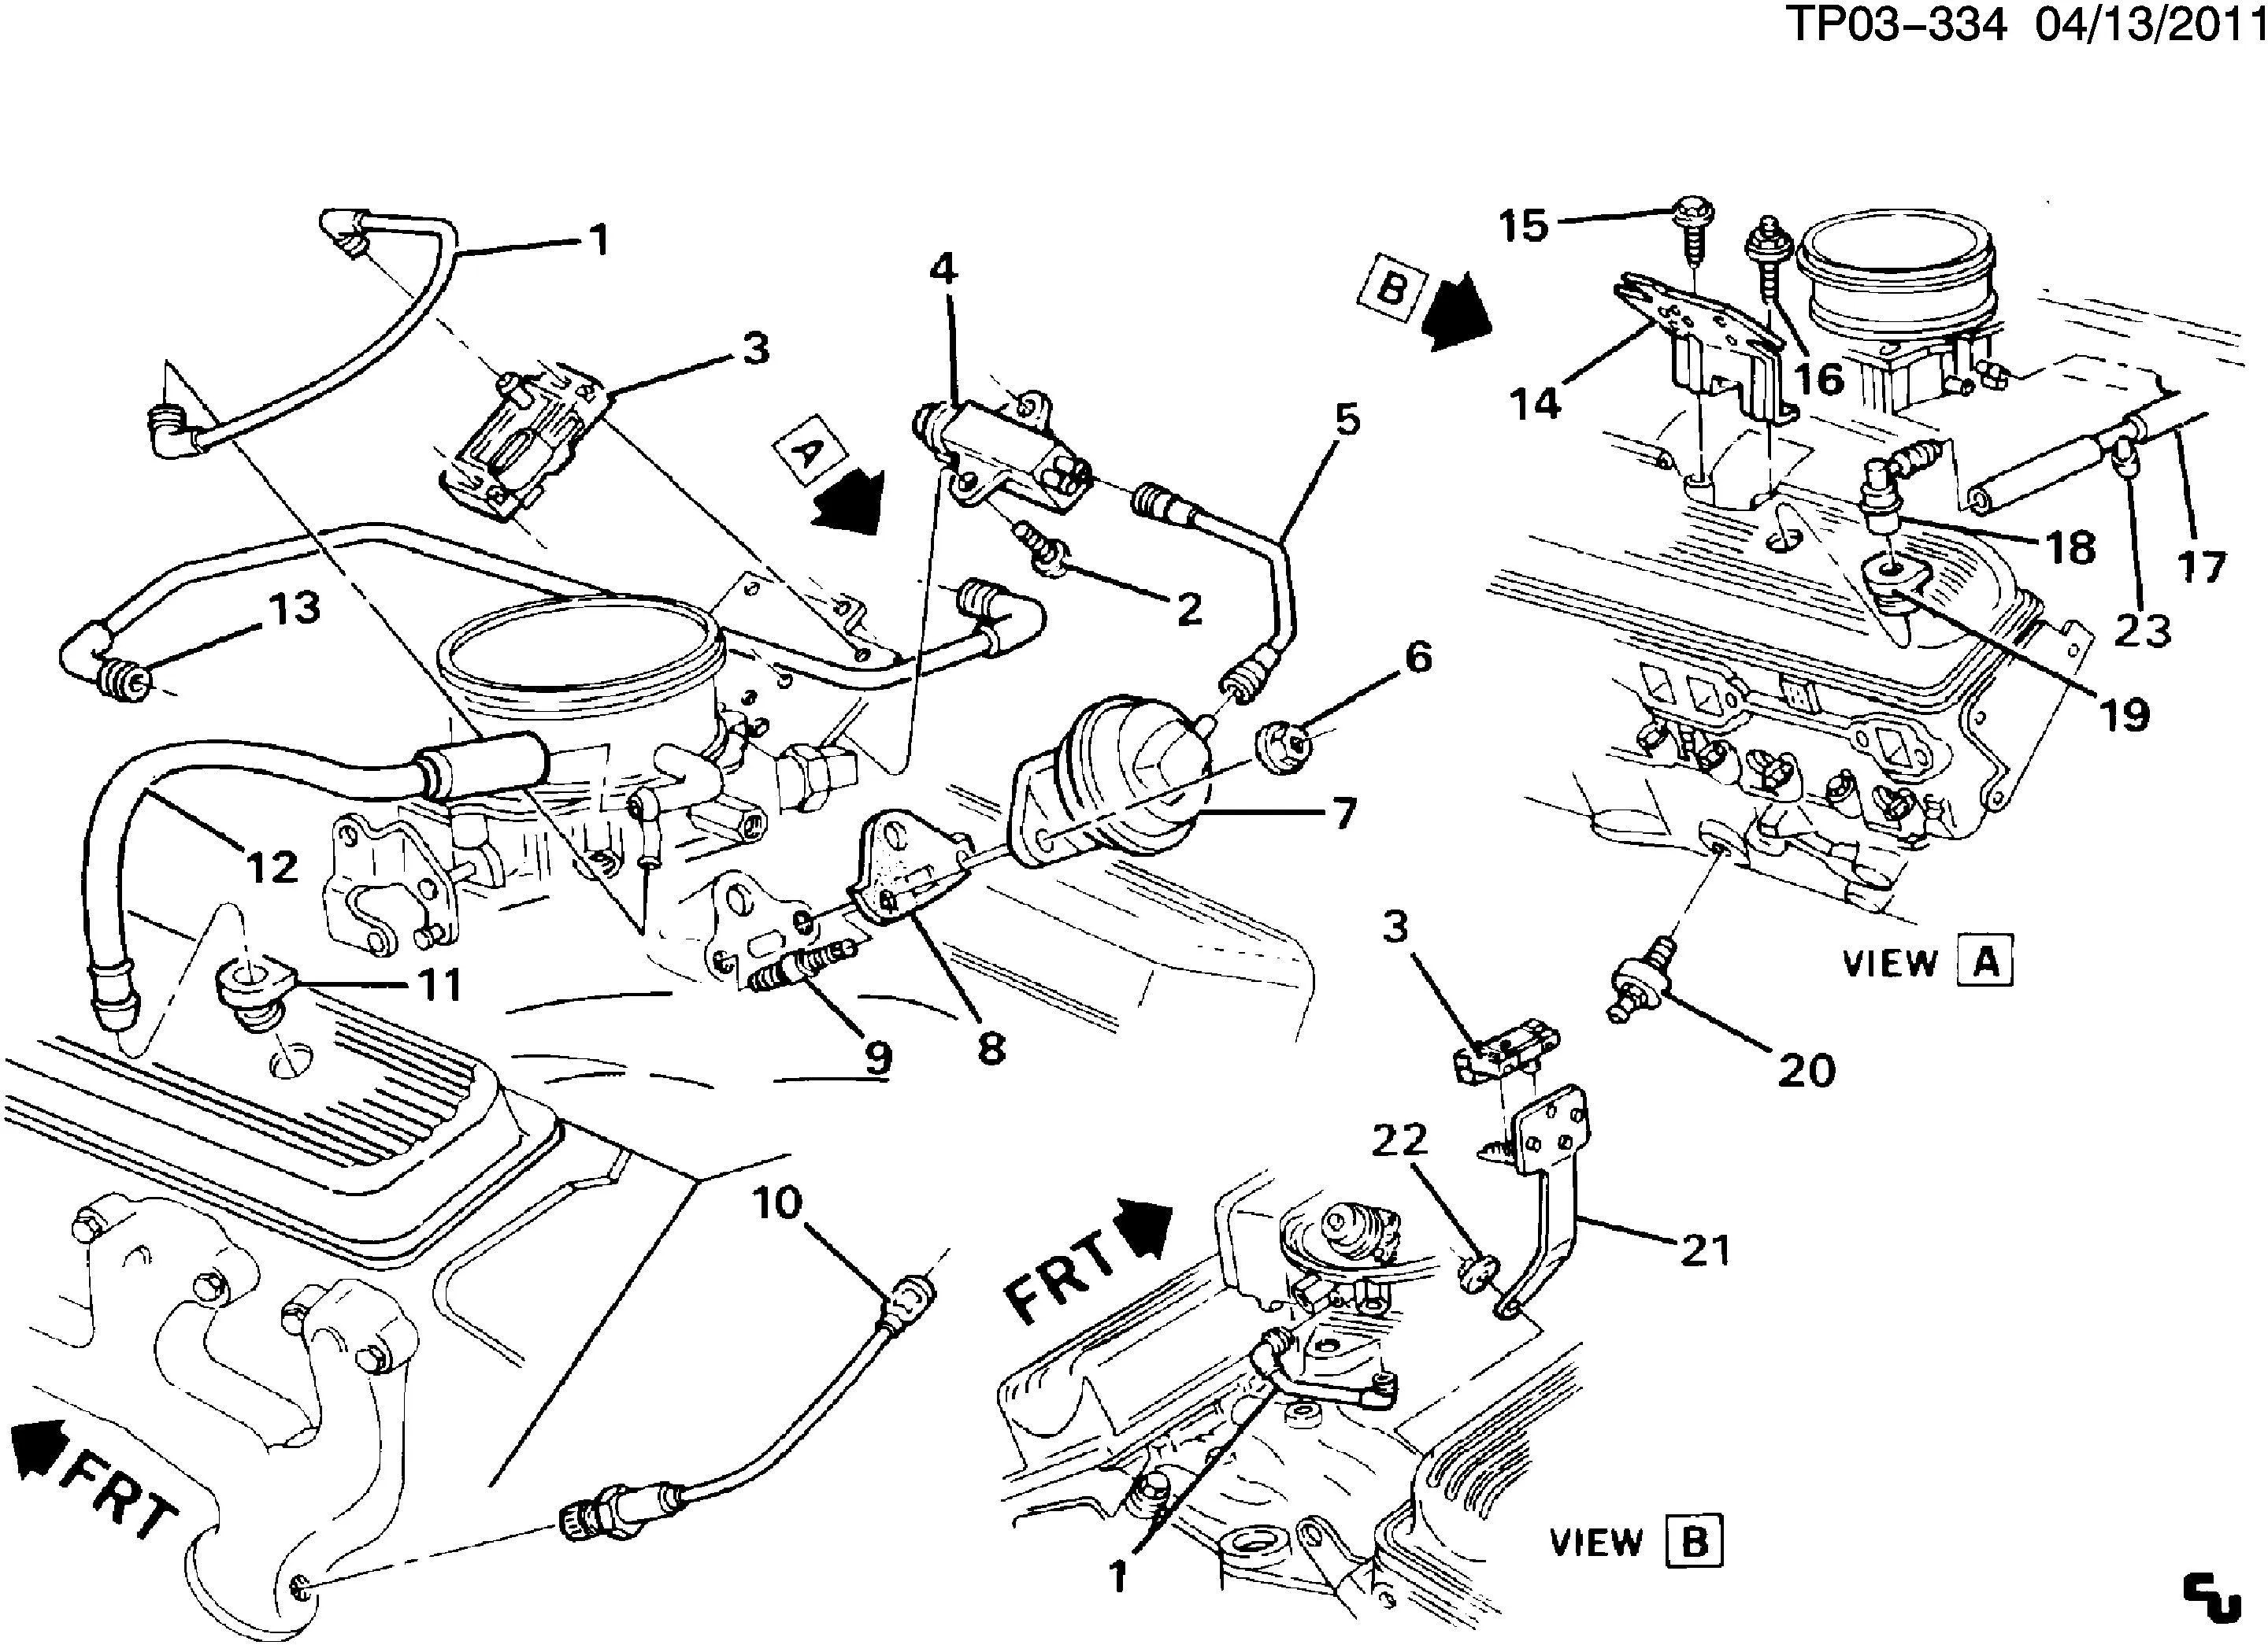 57 Chevy Wiring Diagram Get Free Image About Wiring Diagram